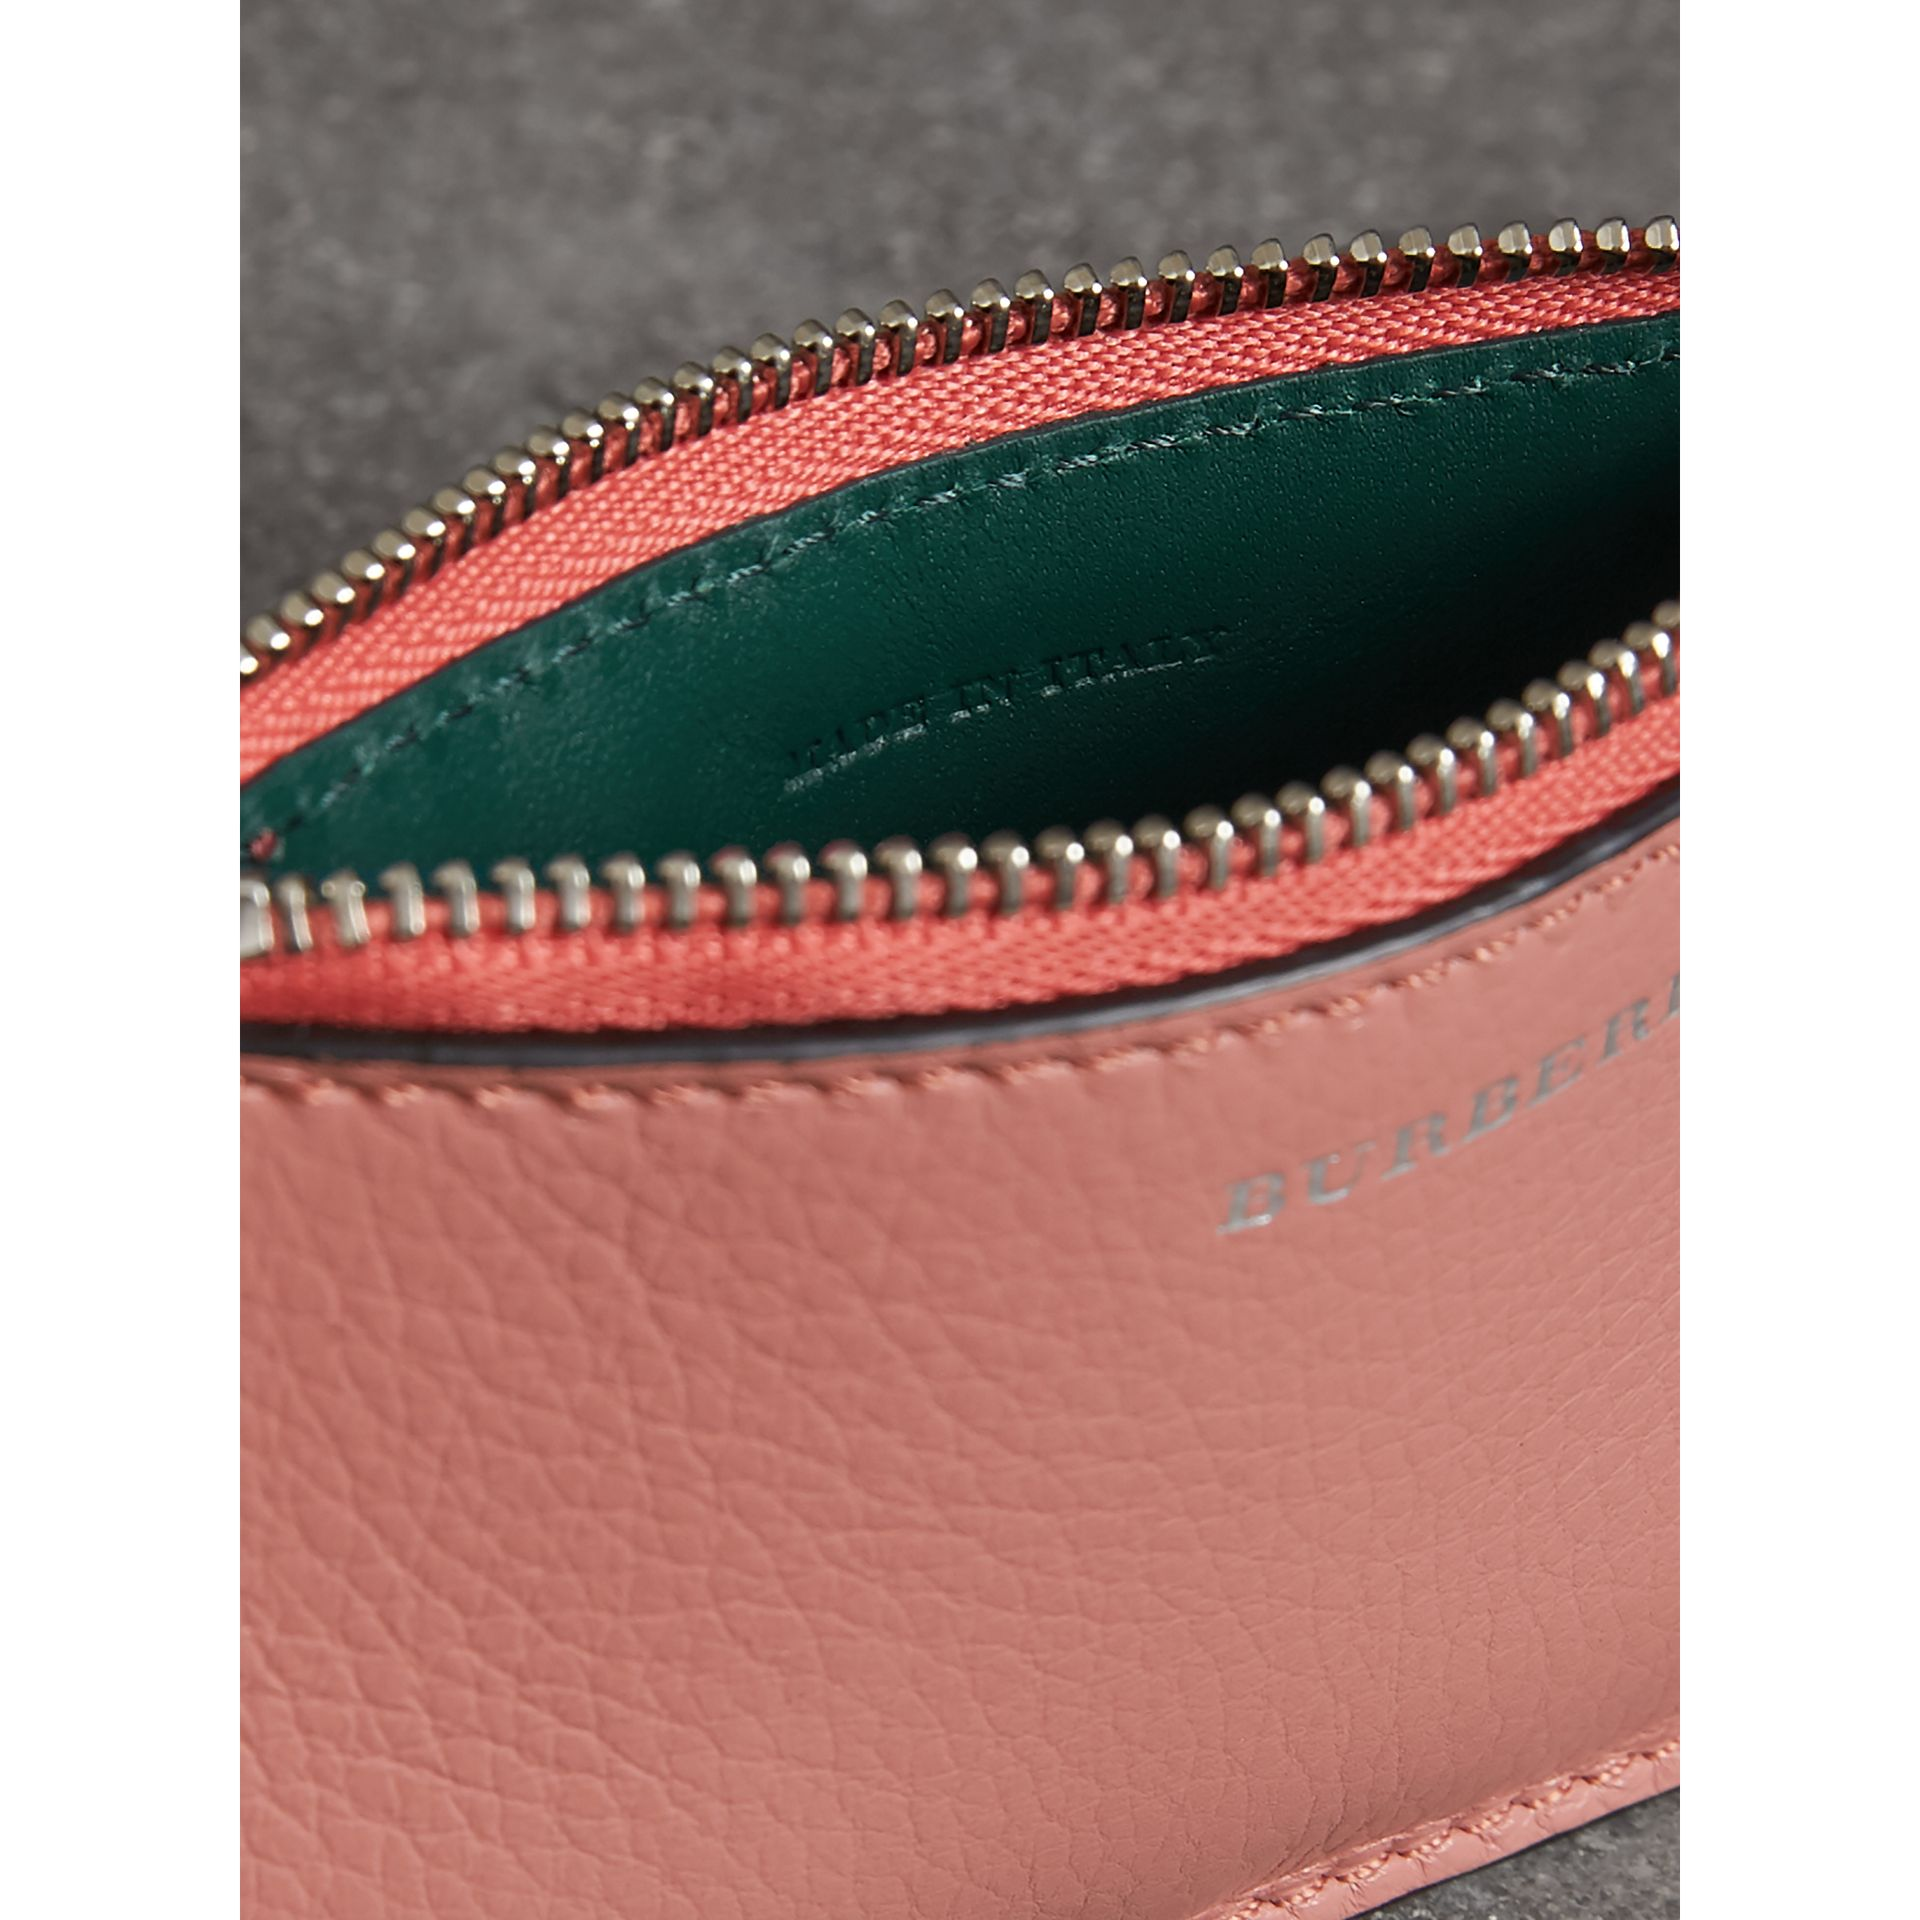 Two-tone Leather Zip Card Case in Dusty Rose - Women | Burberry - gallery image 3